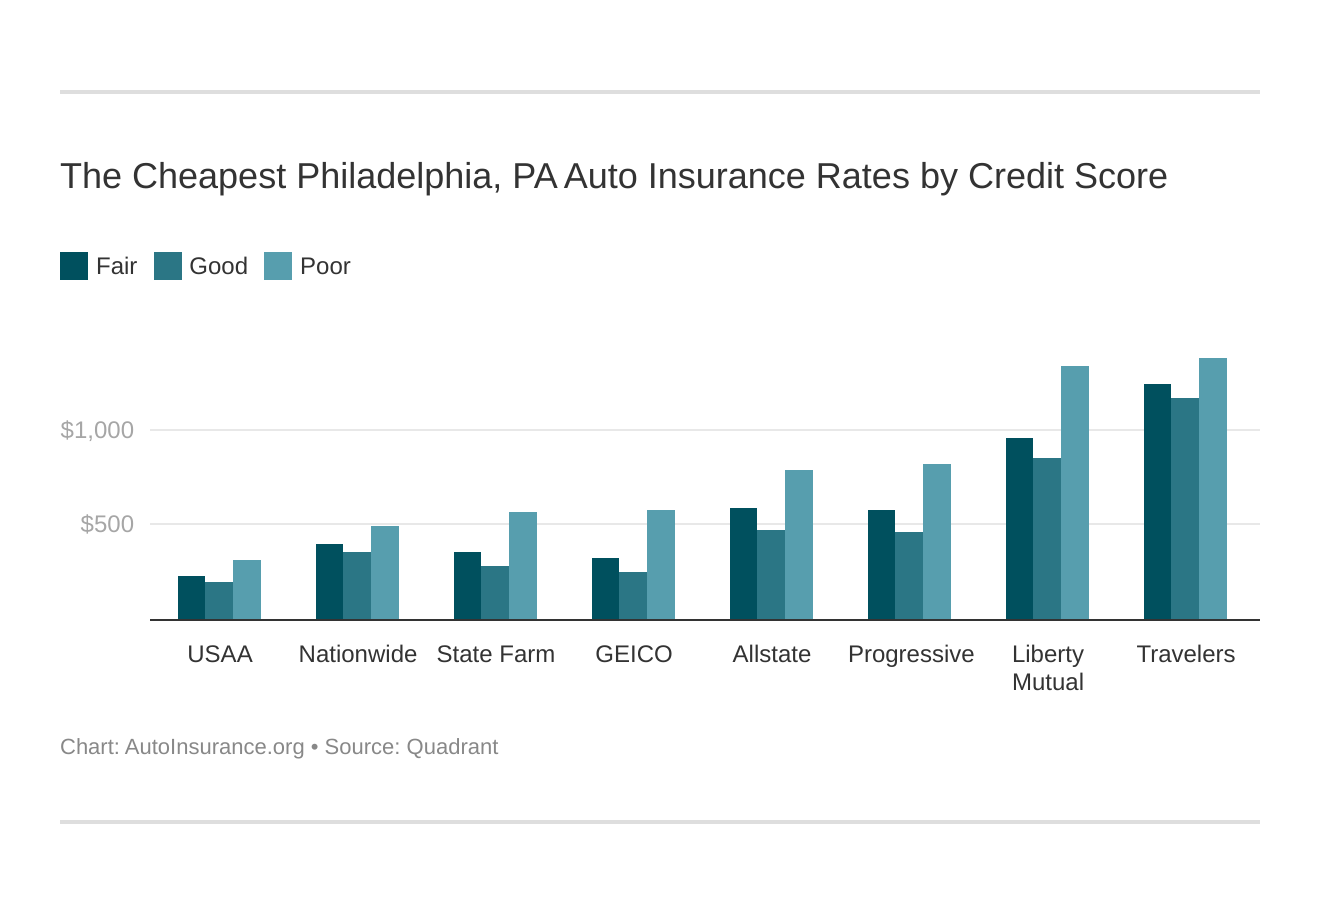 The Cheapest Philadelphia, PA Auto Insurance Rates by Credit Score